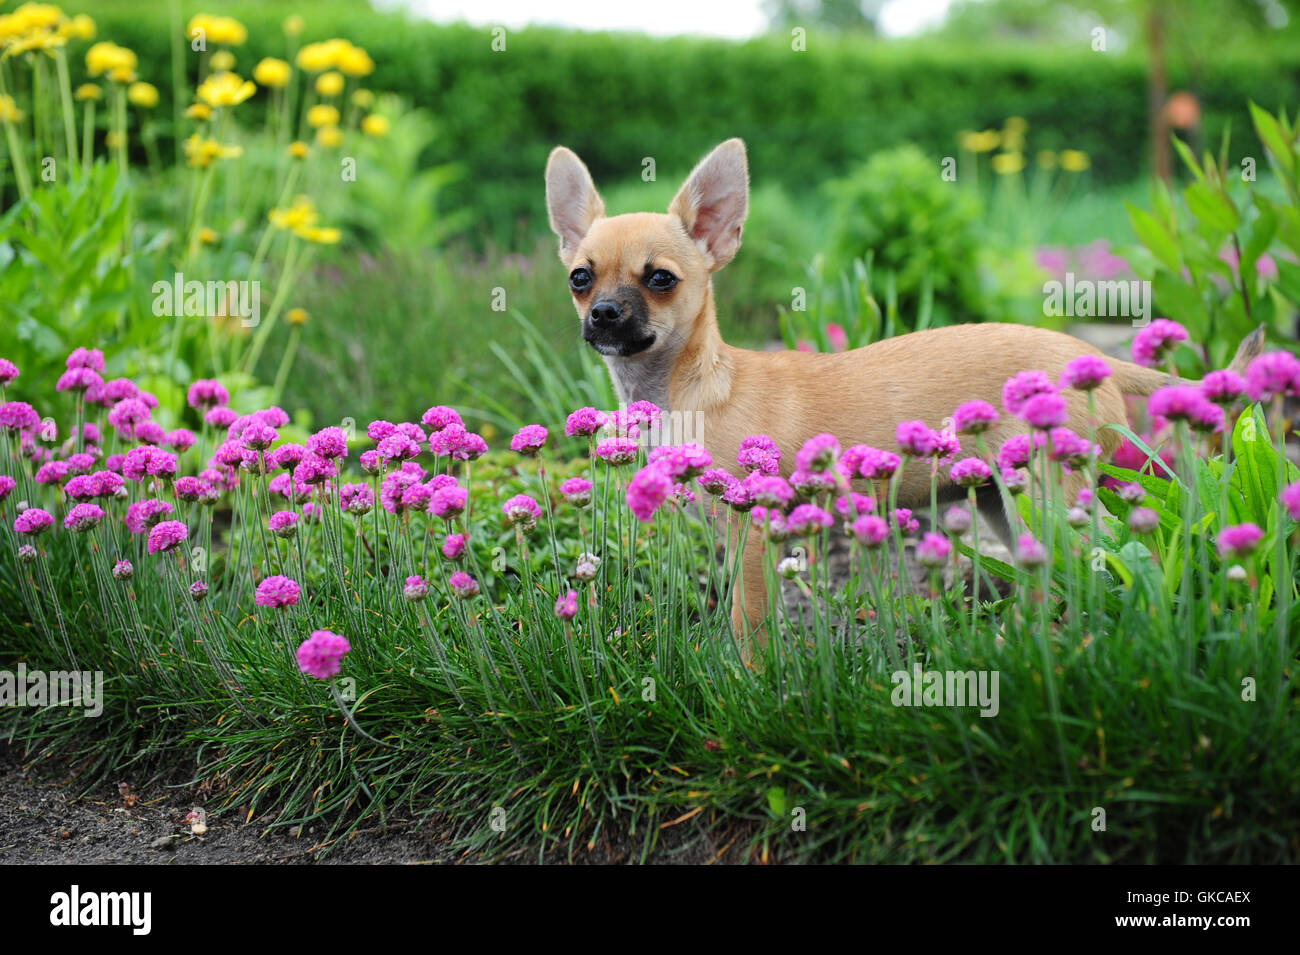 dog stands puppy - Stock Image